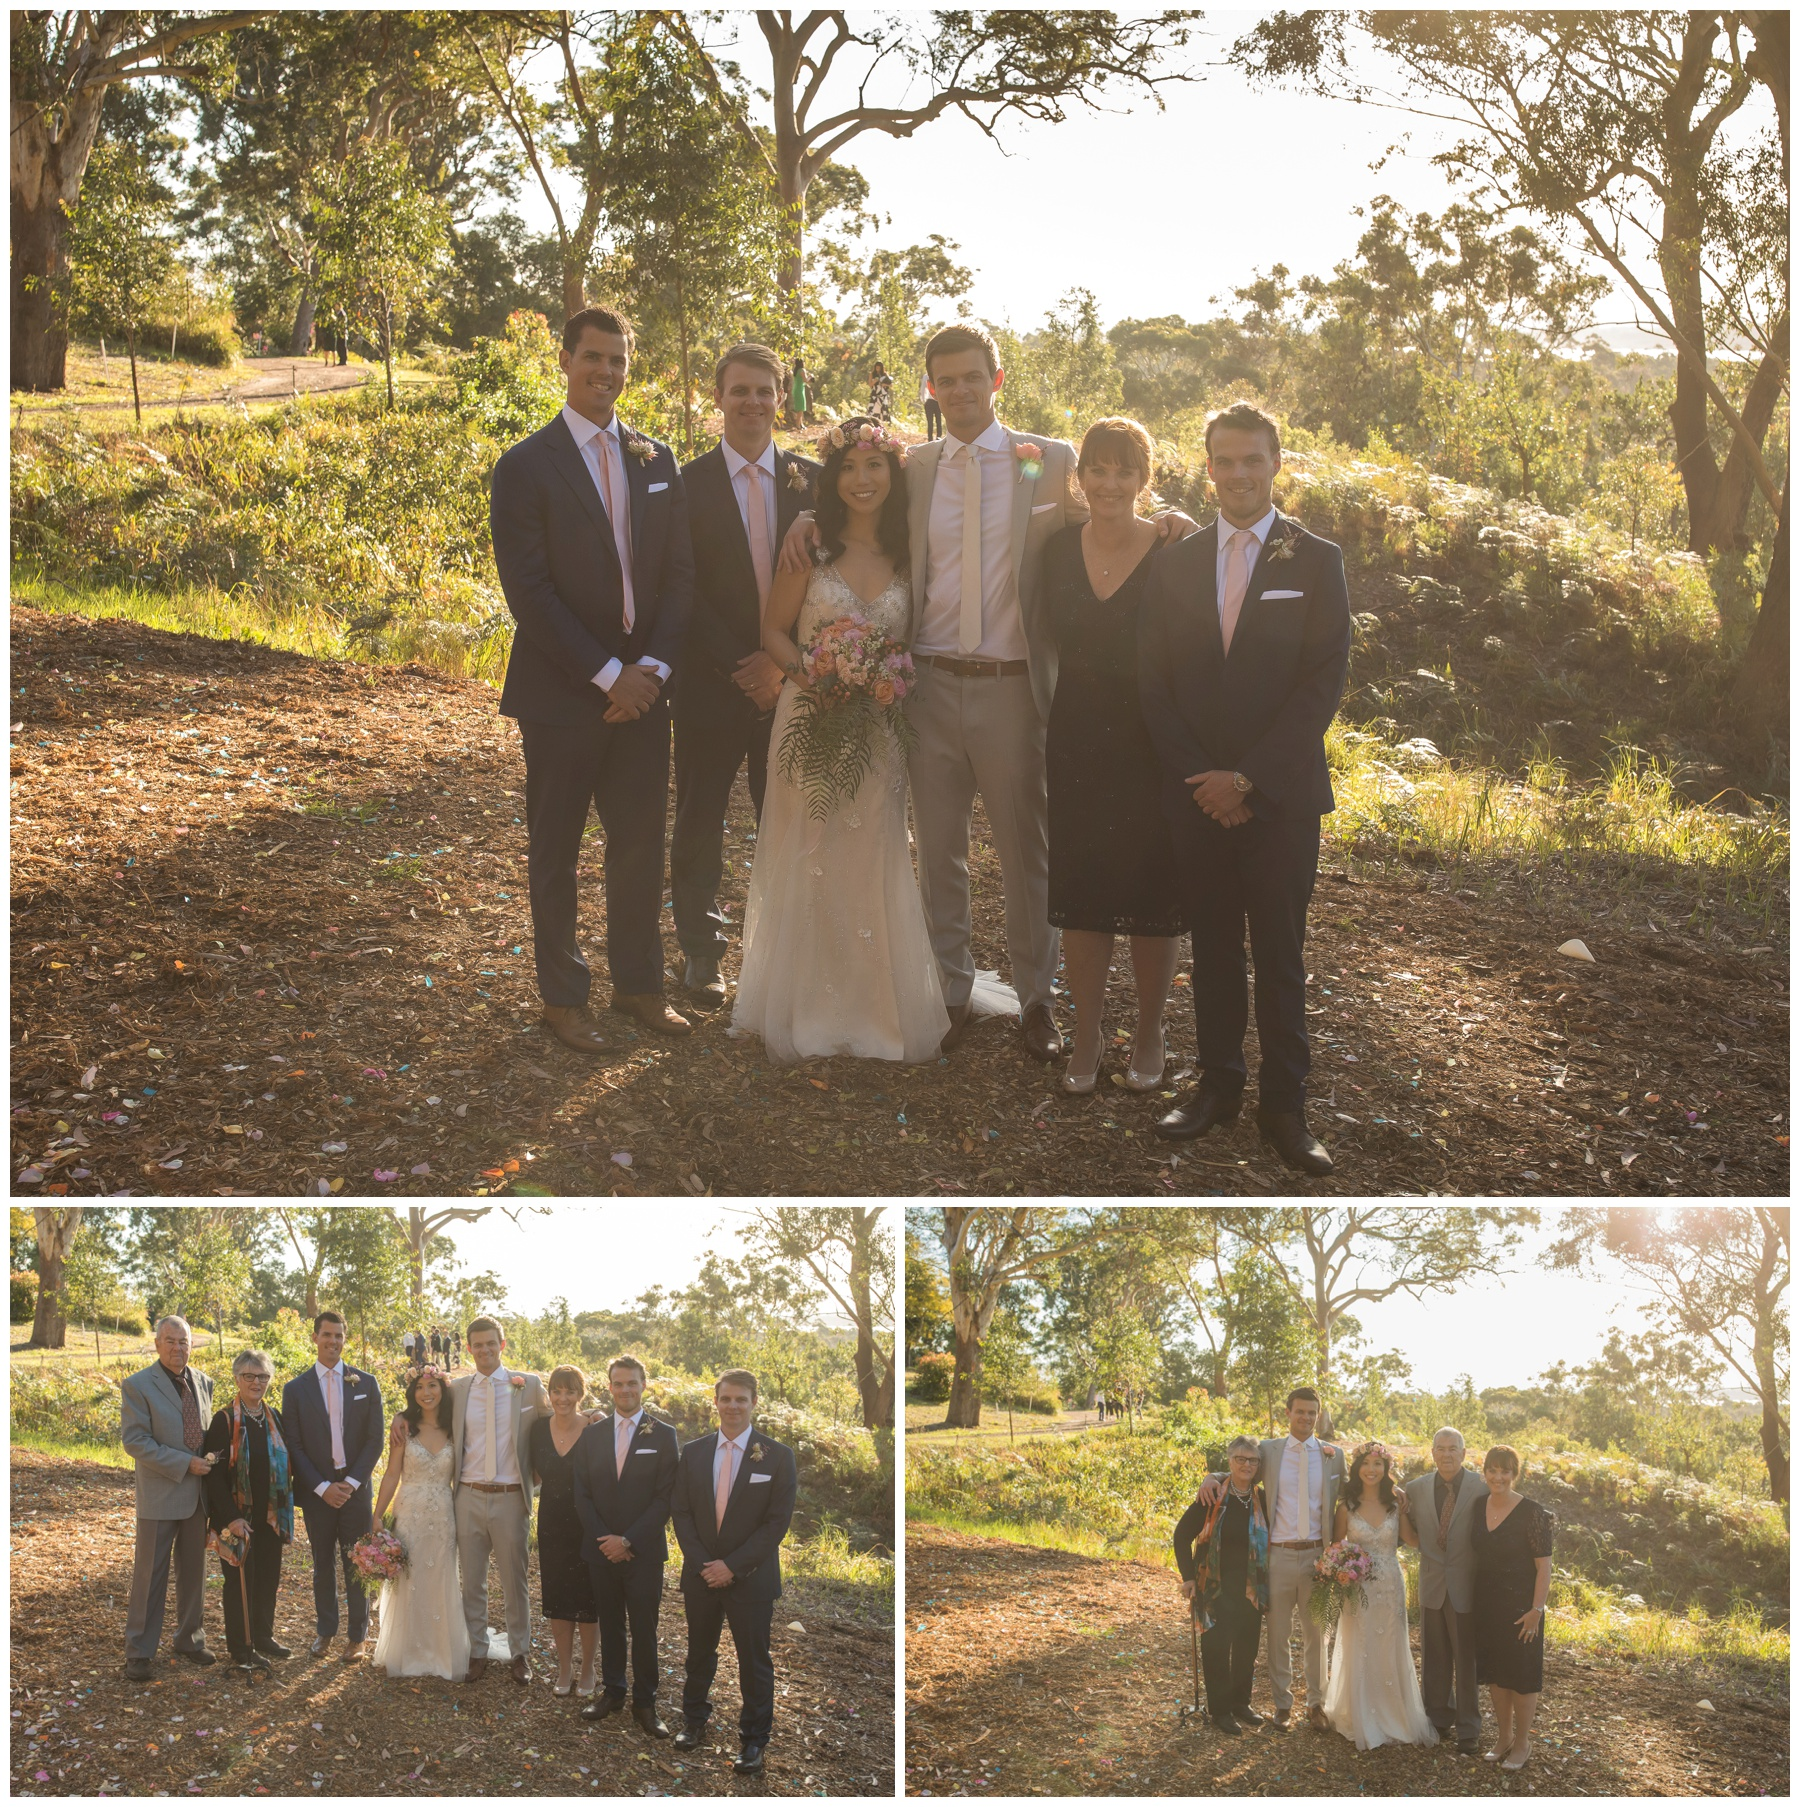 Country Wedding photographer, Nelson Bay wedding, Kangaroo Valley wedding photographer, Southern highlands photographer, Chrissy, yougotphilthy